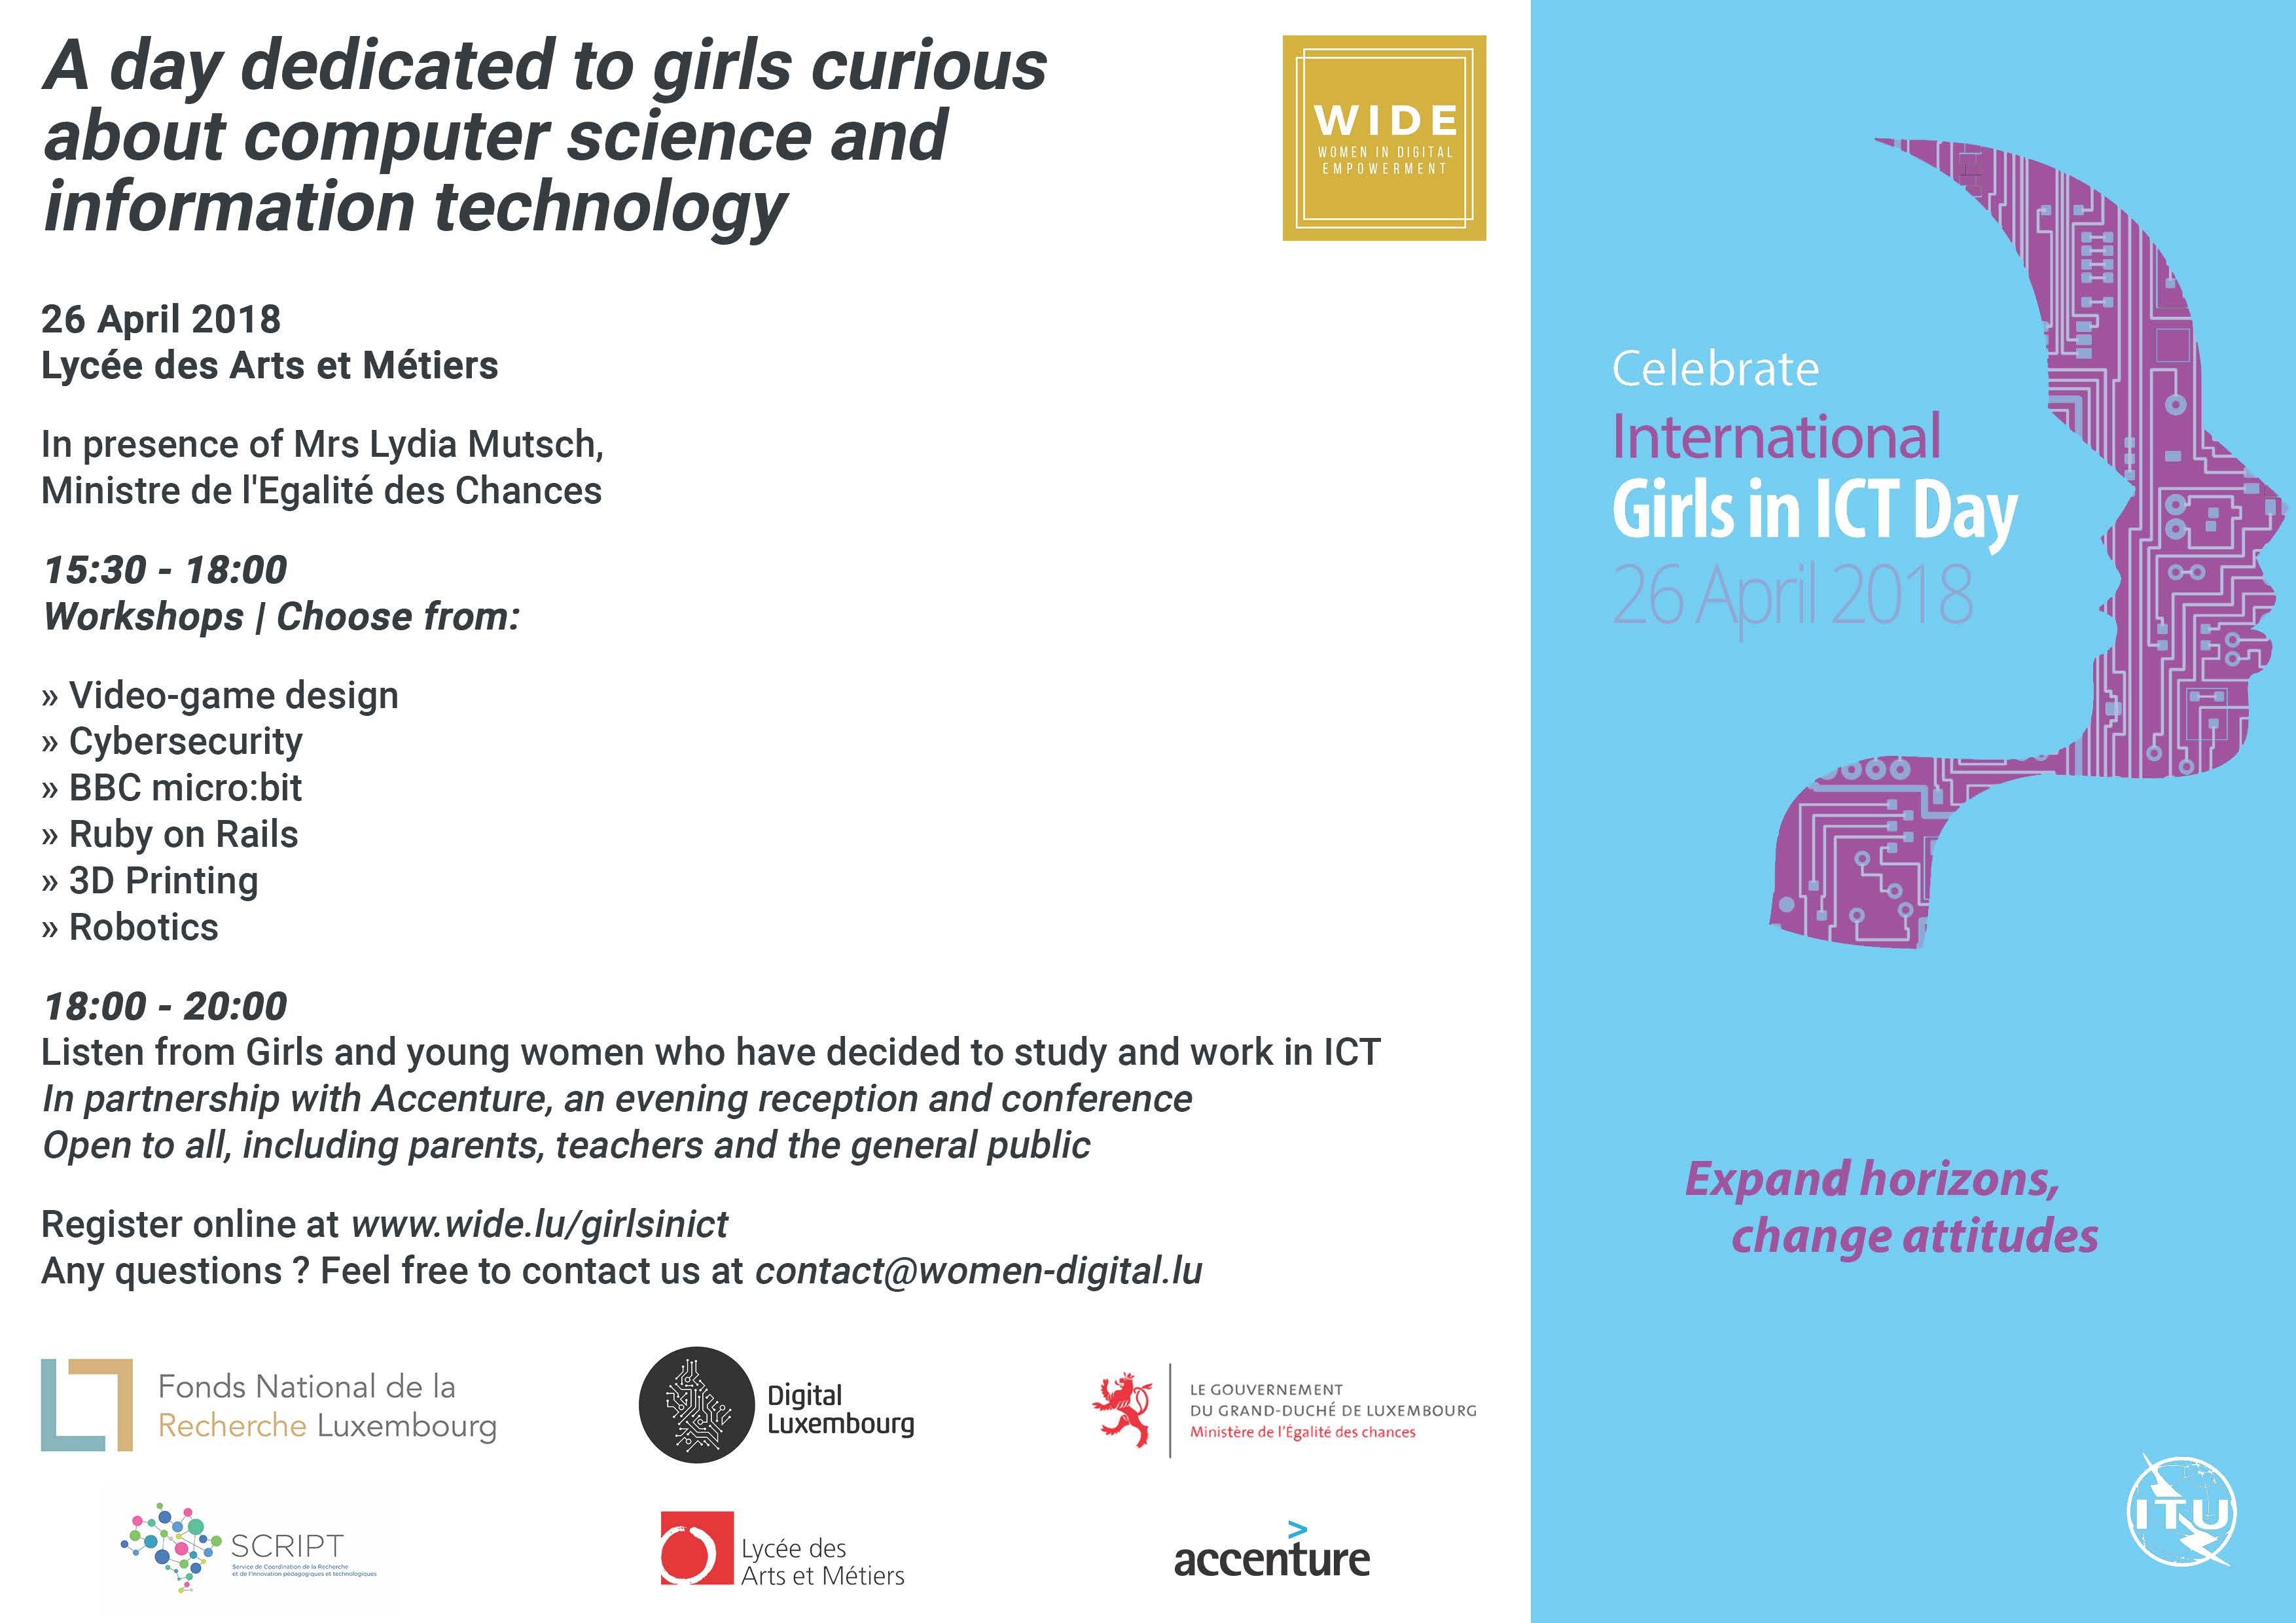 ict-flyer-original.jpg